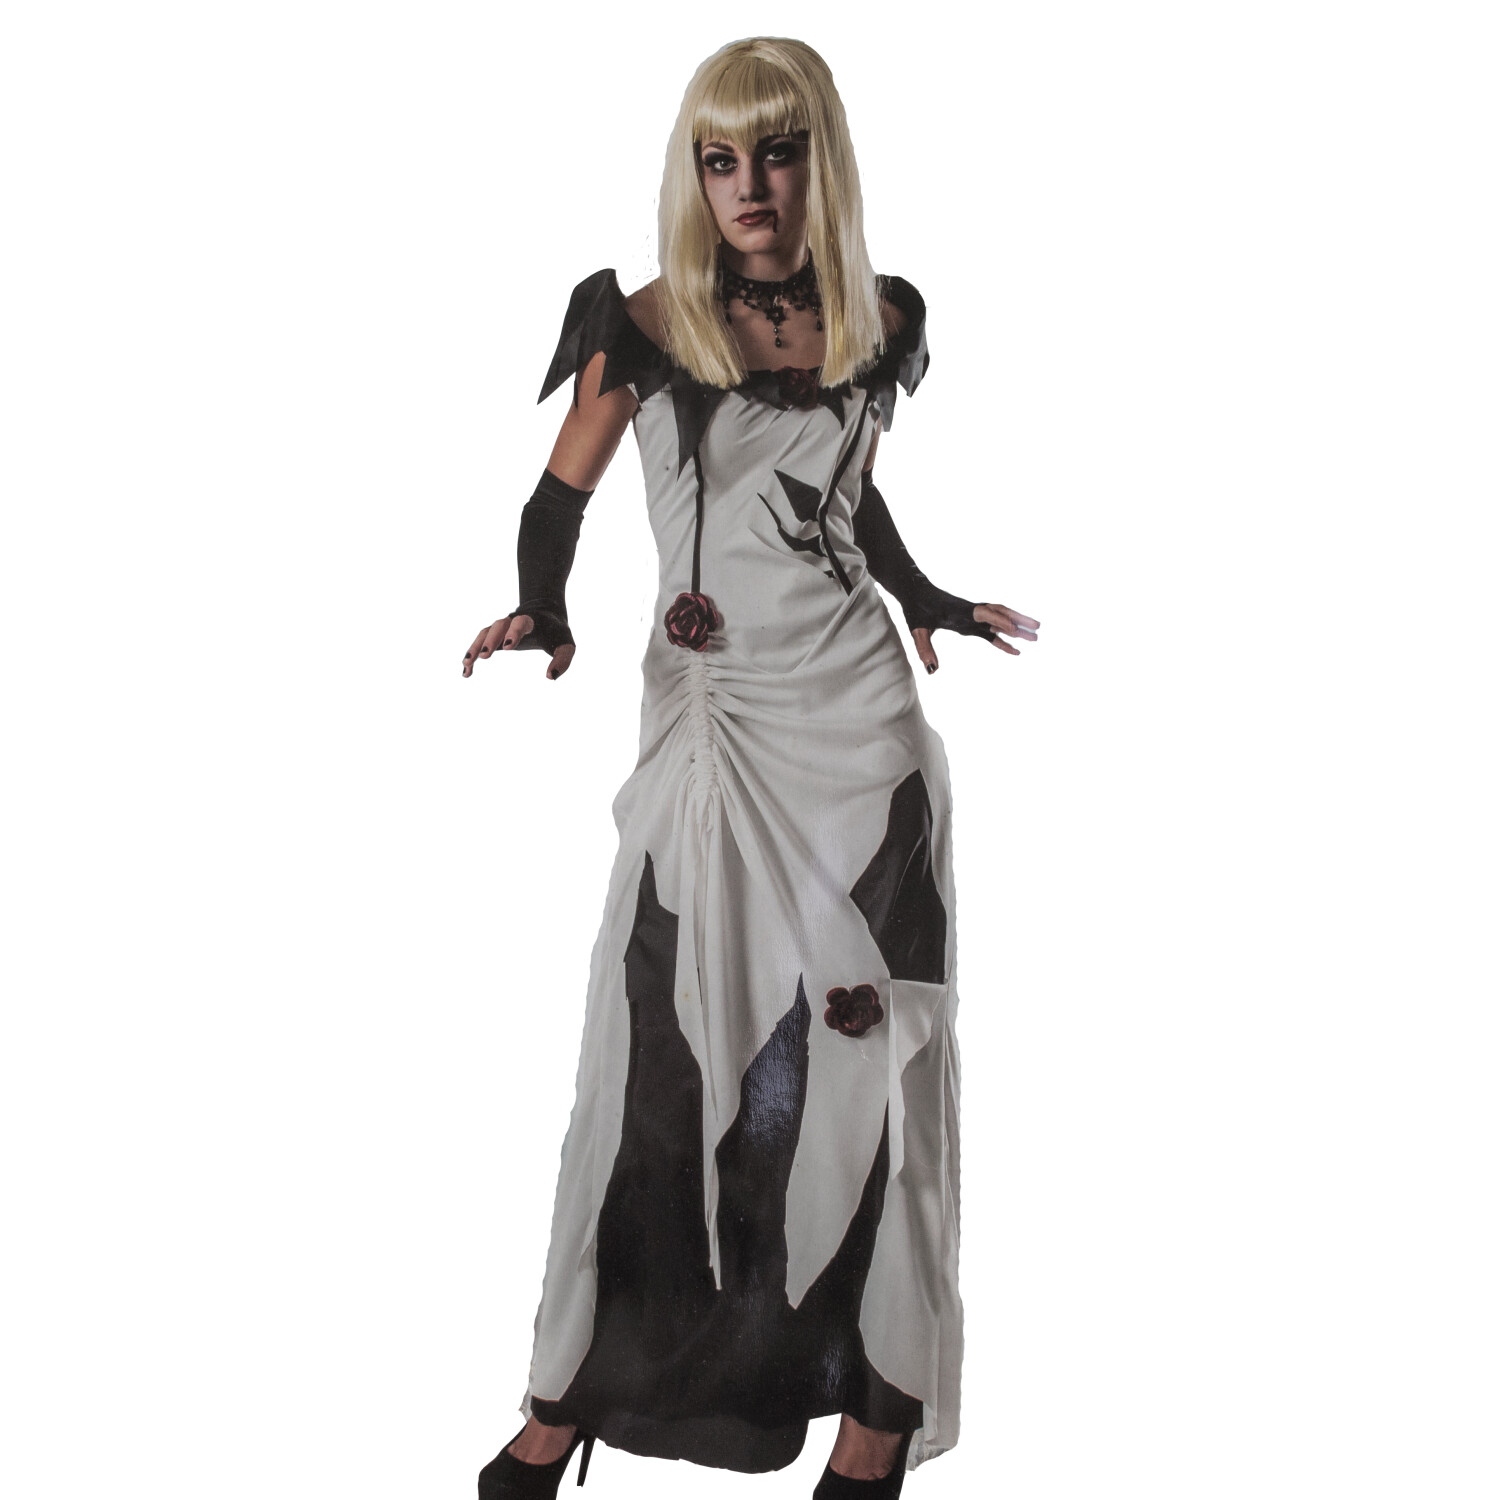 Rubies Creeping Beauty Scary Tales Halloween Costume for Women - L - White/Black